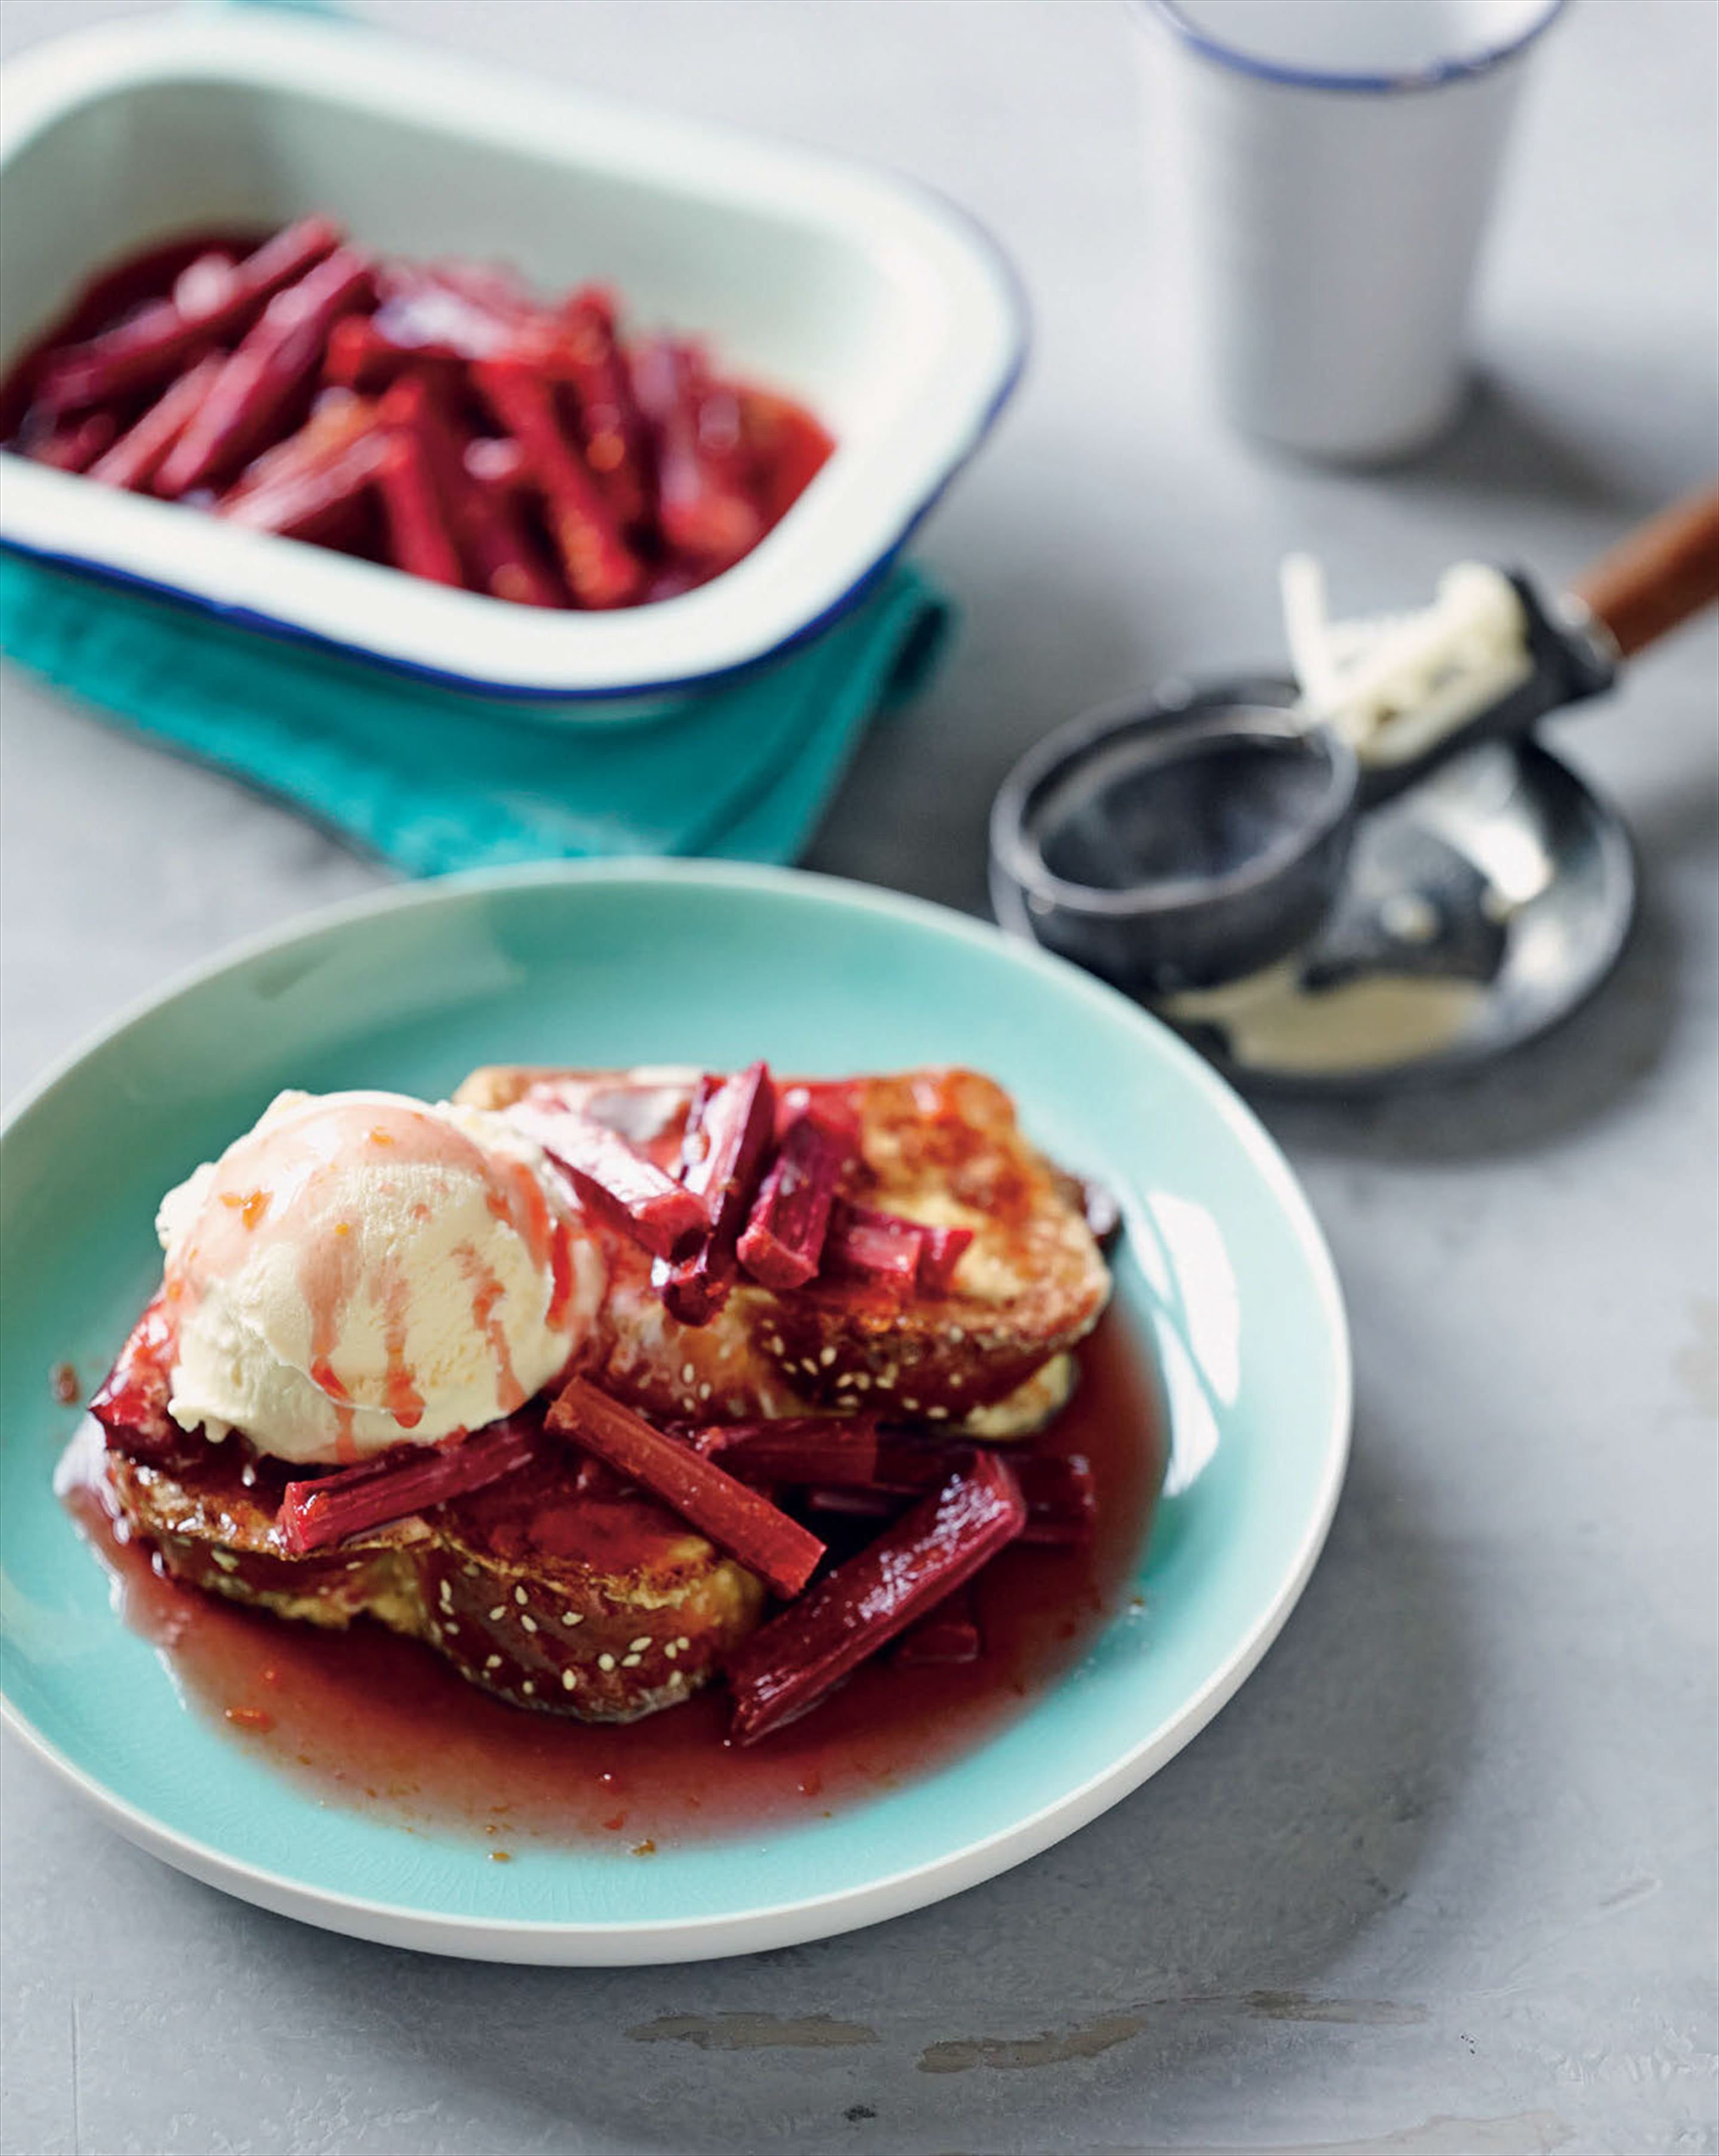 French toast with baked rhubarb, almonds and vanilla ice cream